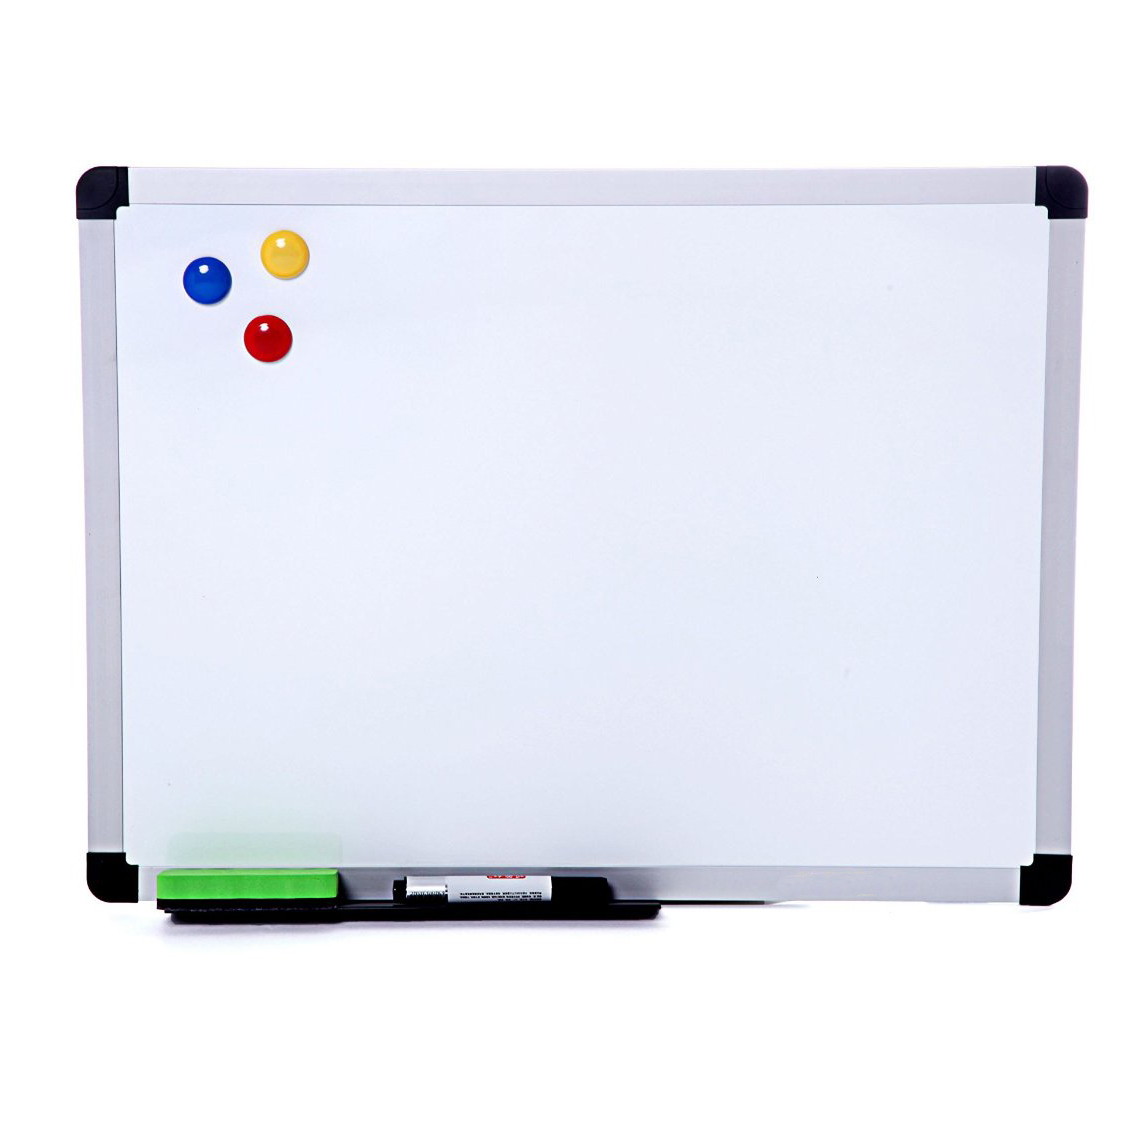 Magnet Whiteboard Magnetic Dry Erase Boards For Classrooms Office Dry Erase